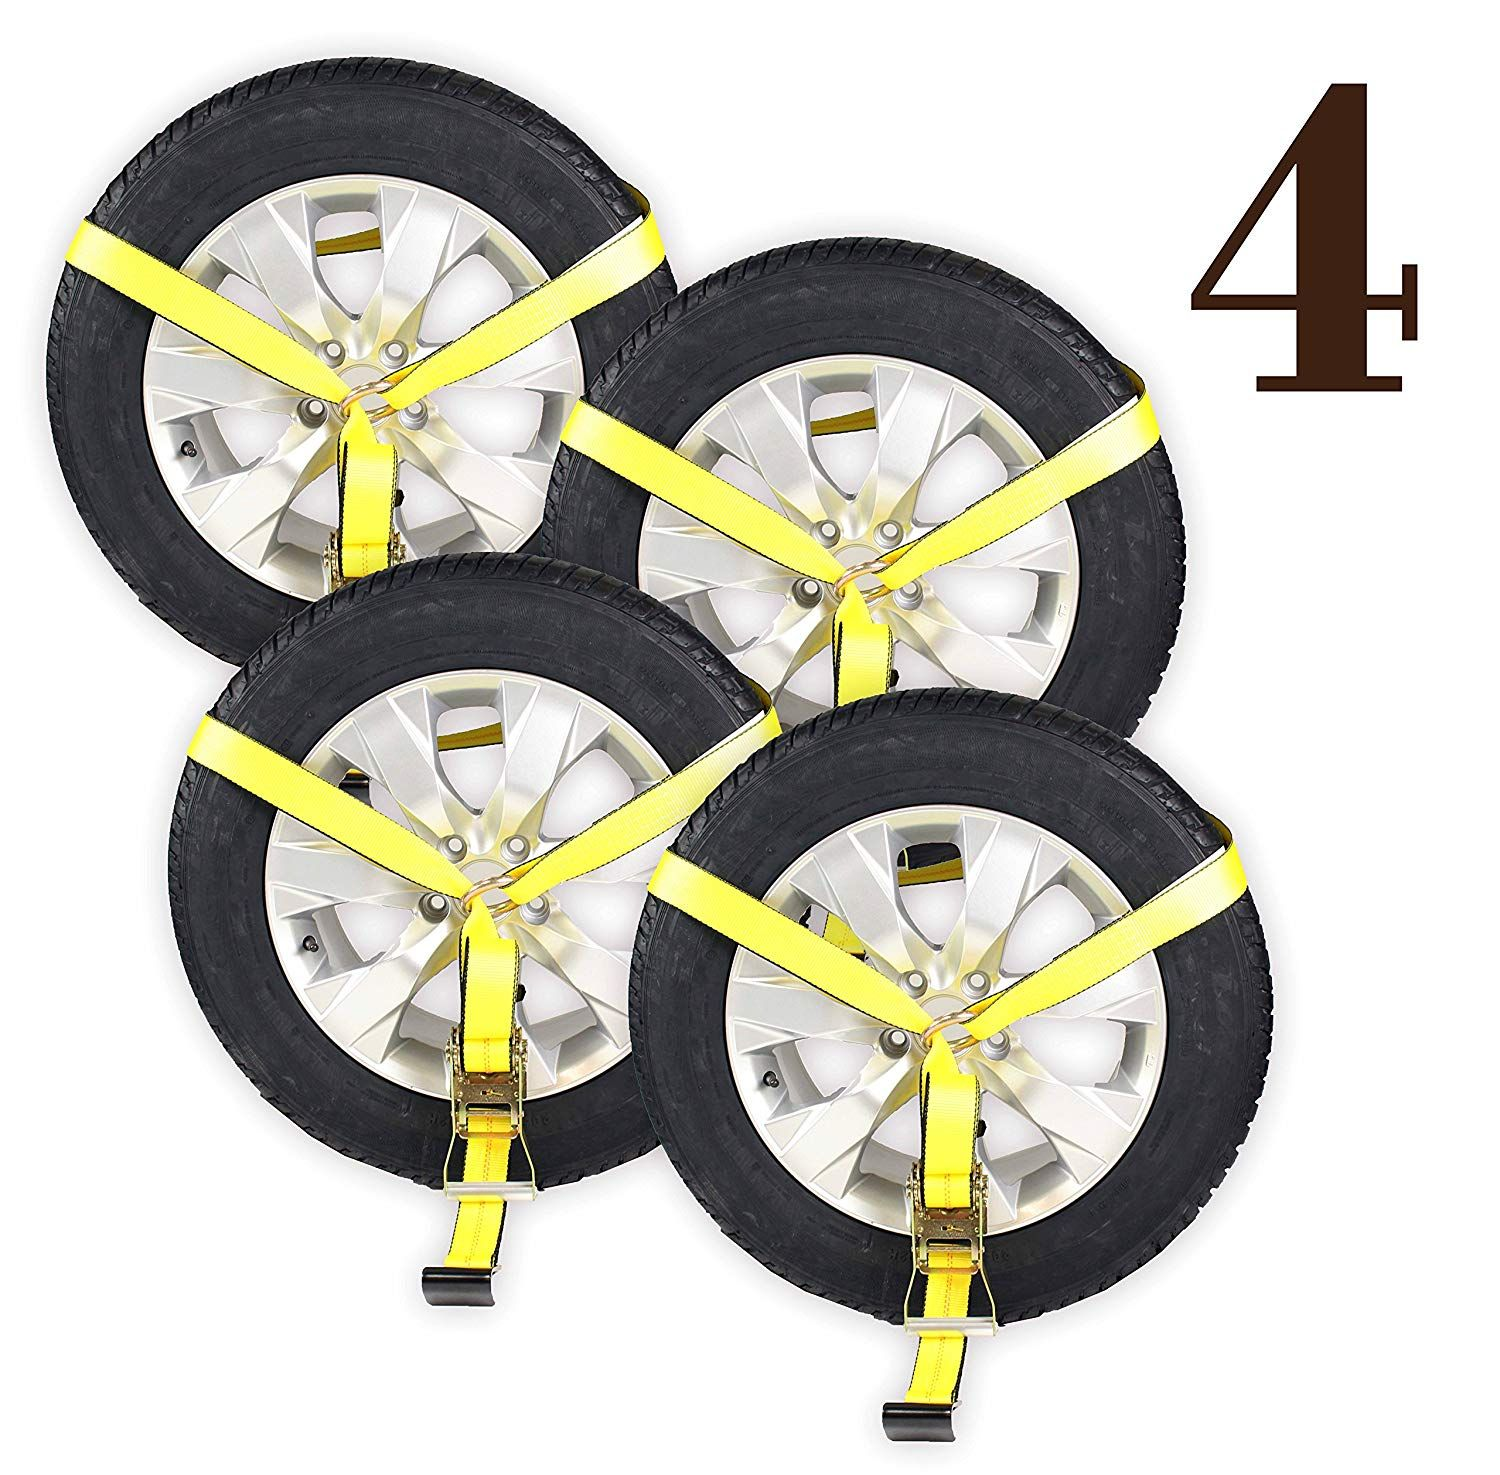 Dc Cargo Mall 4 Side Mount Wheel Nets With Flat Hook And Ratchet 4 Pack Car Wheel Lasso Straps For Auto Hauling Click On The Im Packing Car Car Wheel Car